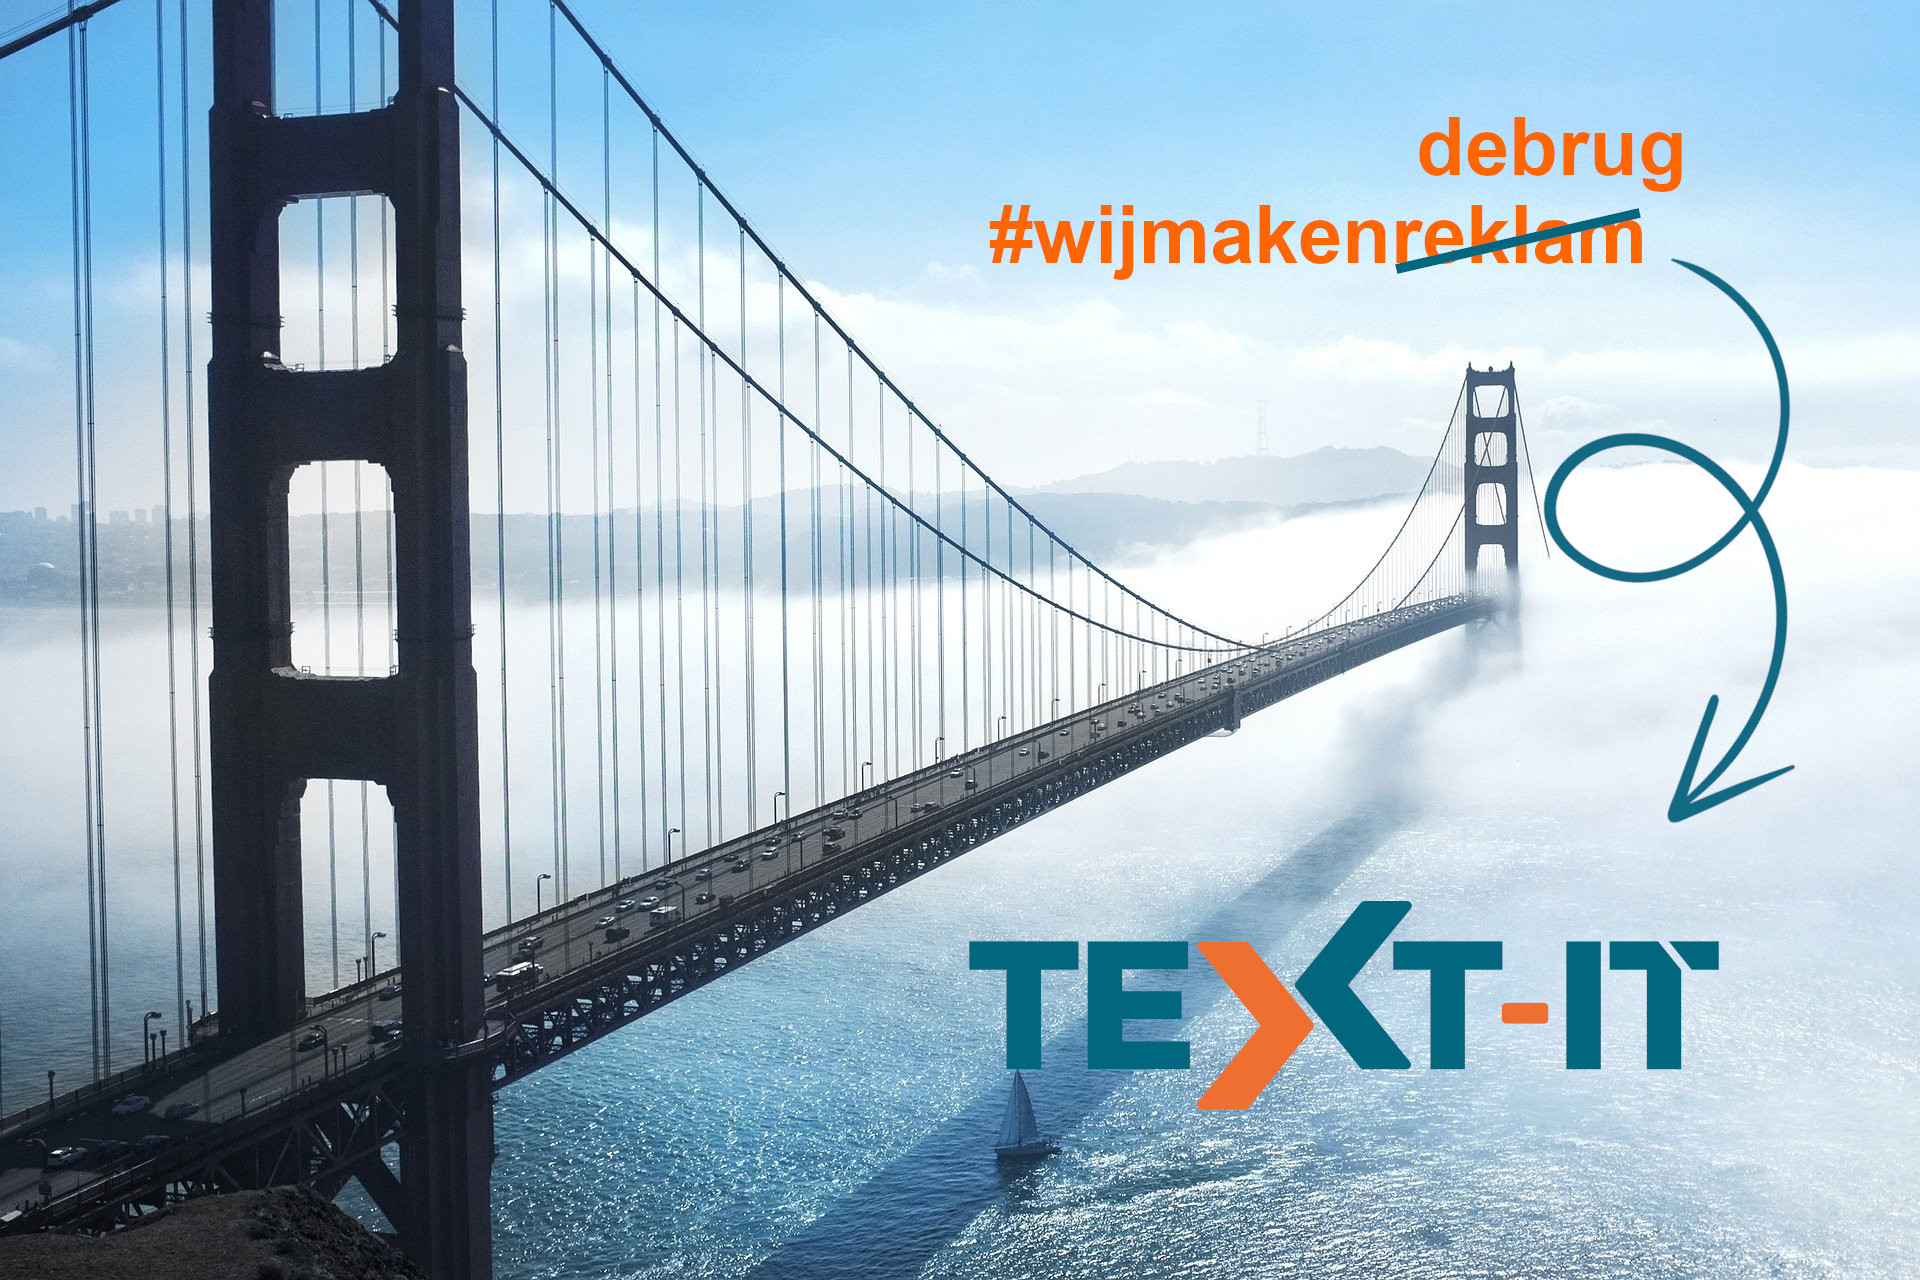 TEXT-IT Reclame Herenthout